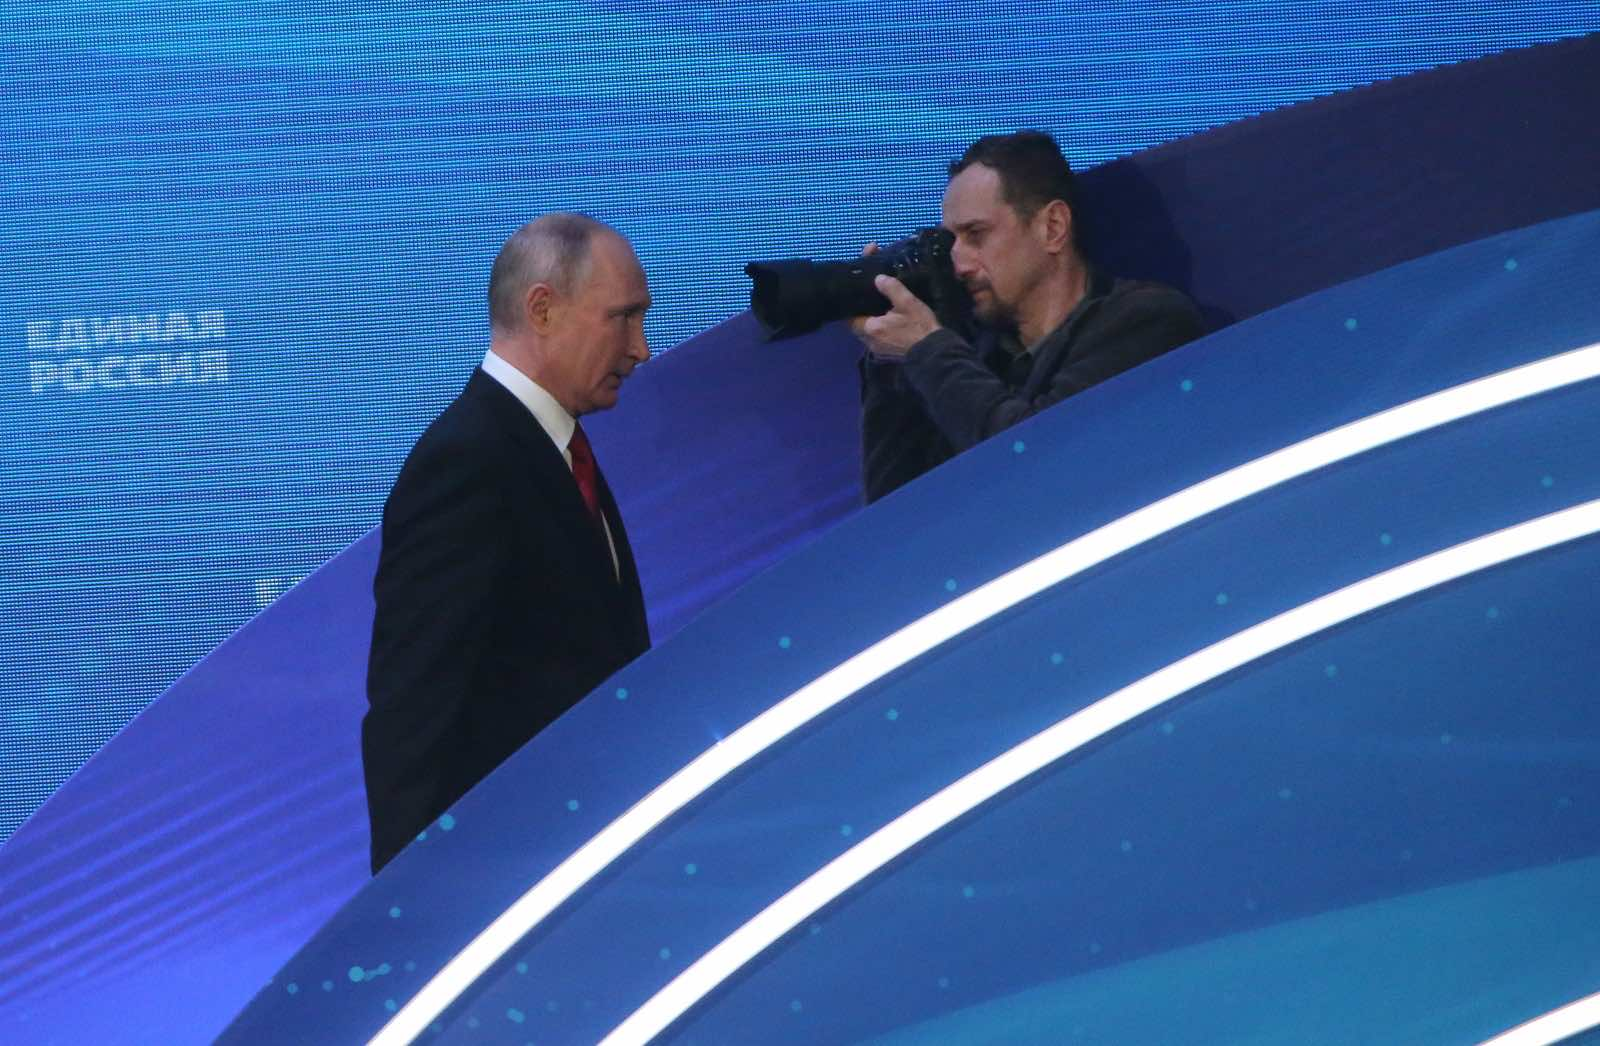 Russian President Vladimir Putin leaves after a speech at the 20th Congress of the United Russia Party in Moscow, 19 June 2021 (Mikhail Svetlov/Getty Images)